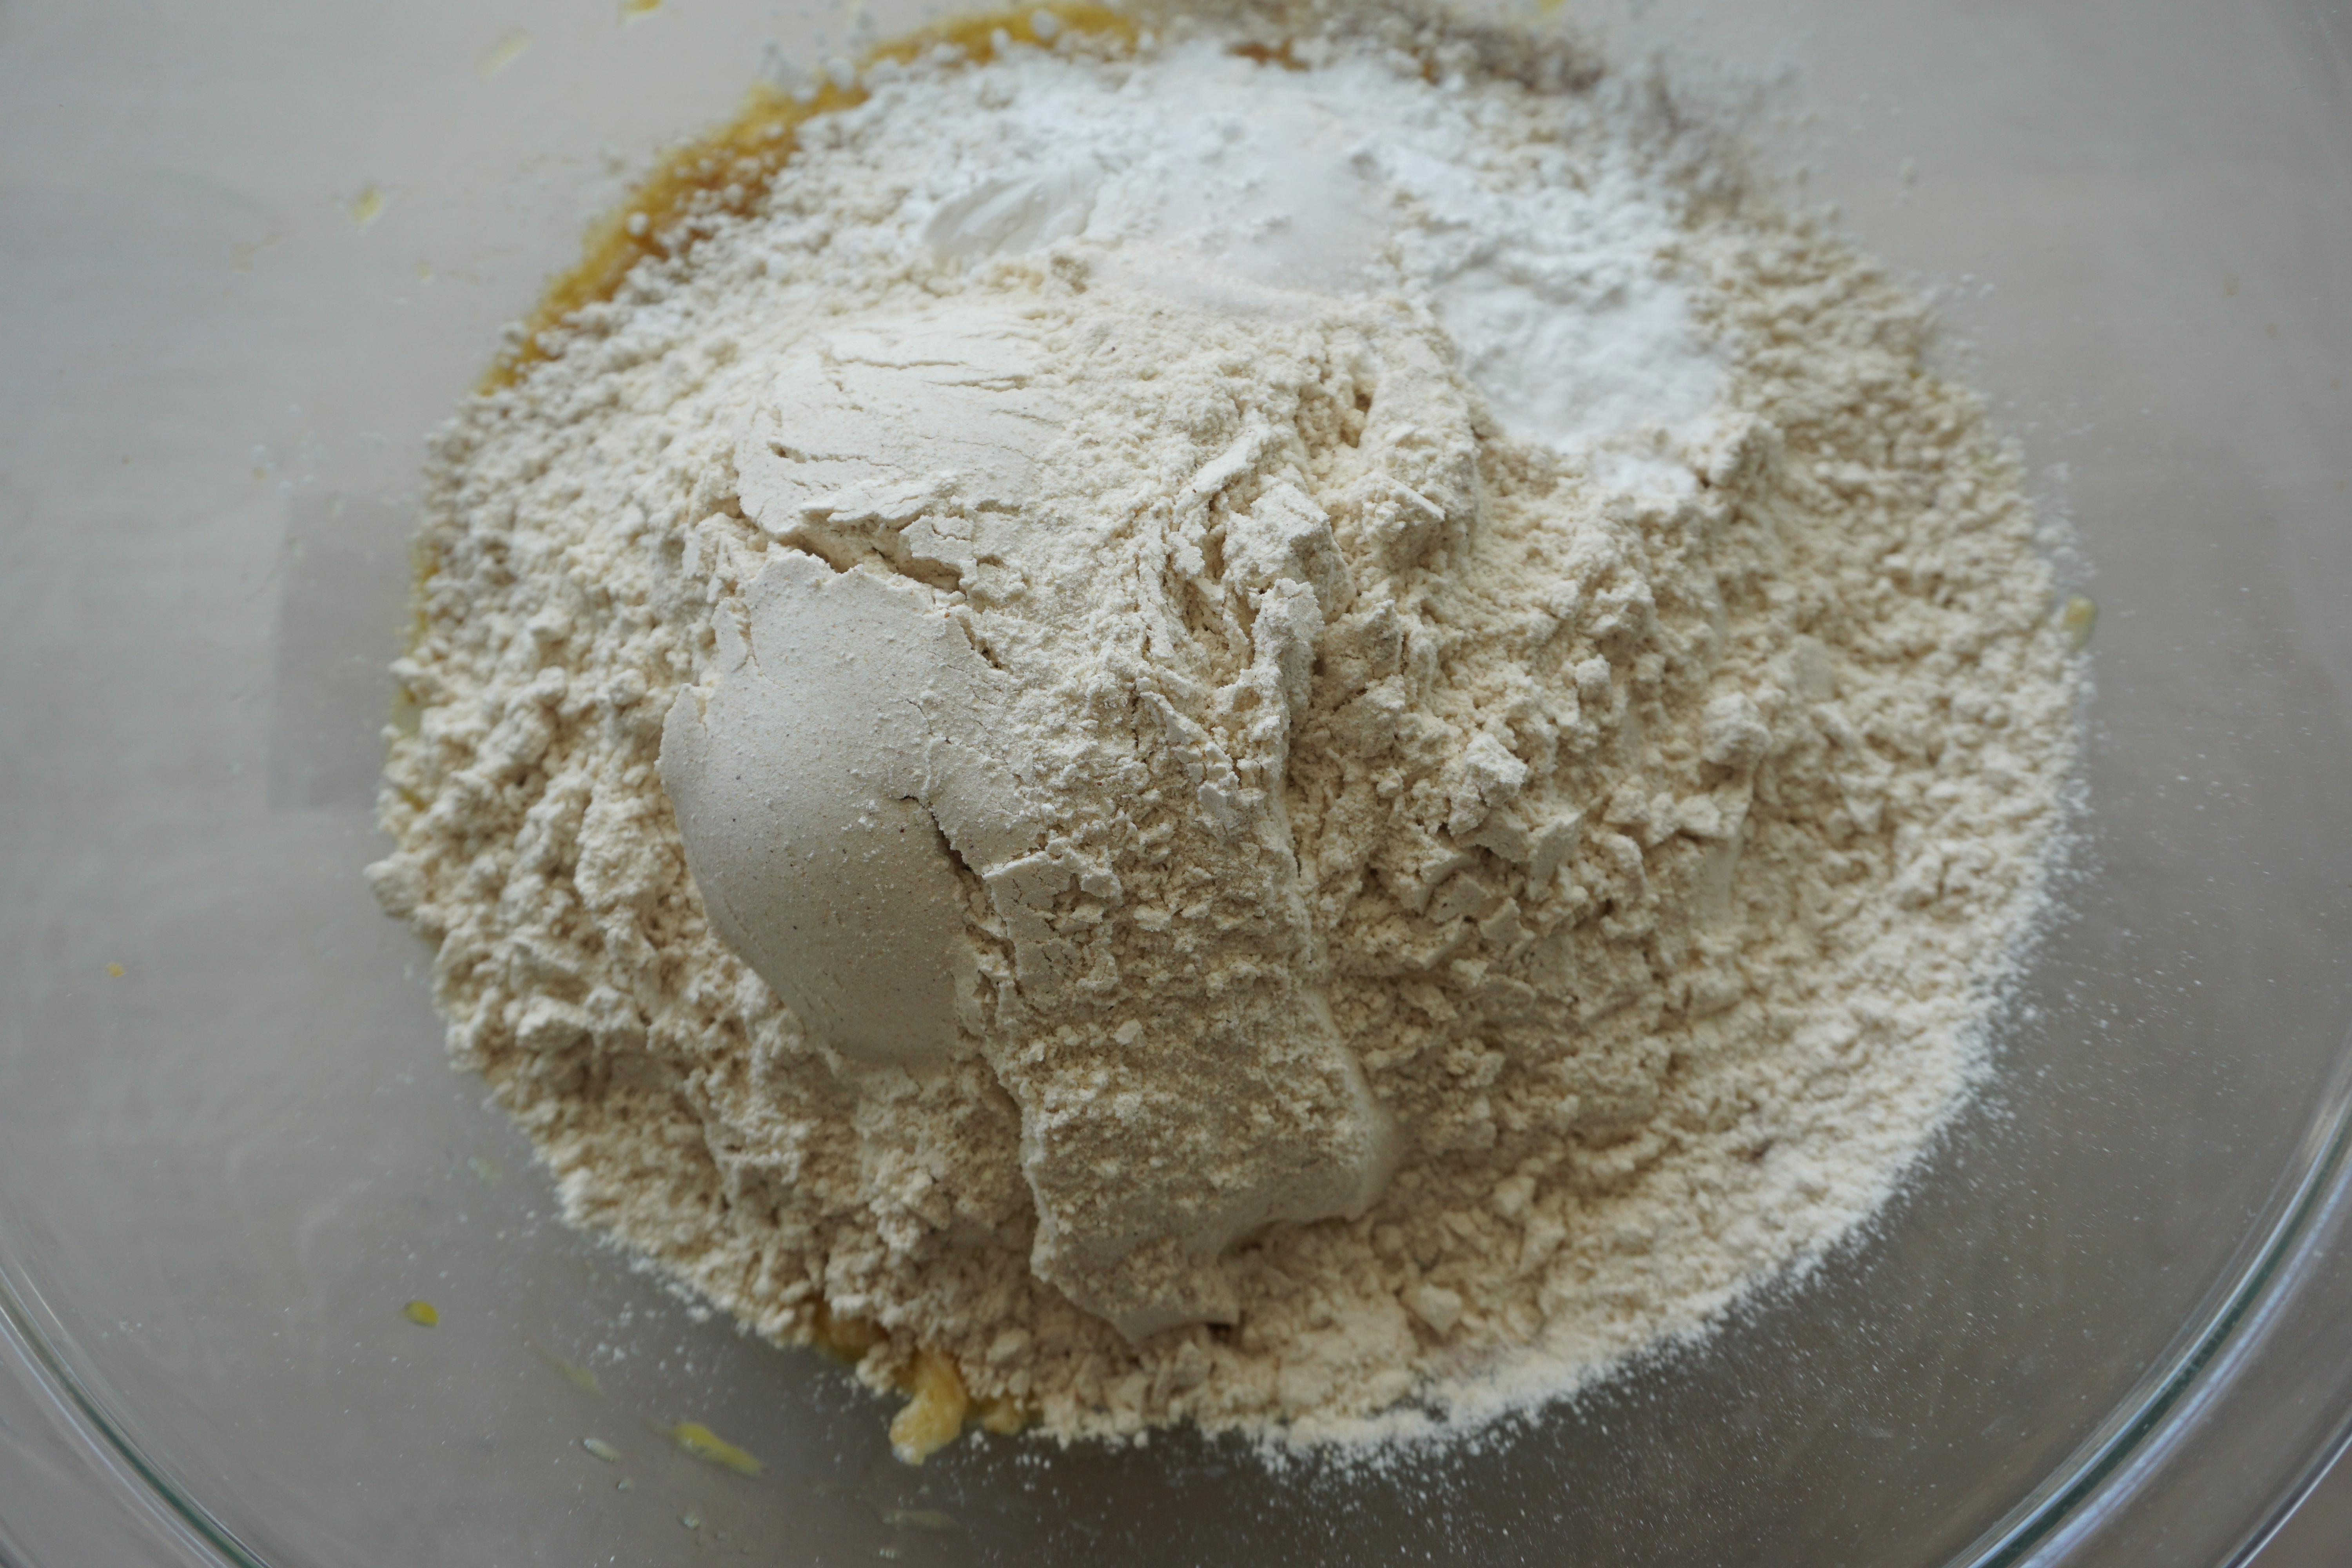 dry ingredients added to wet